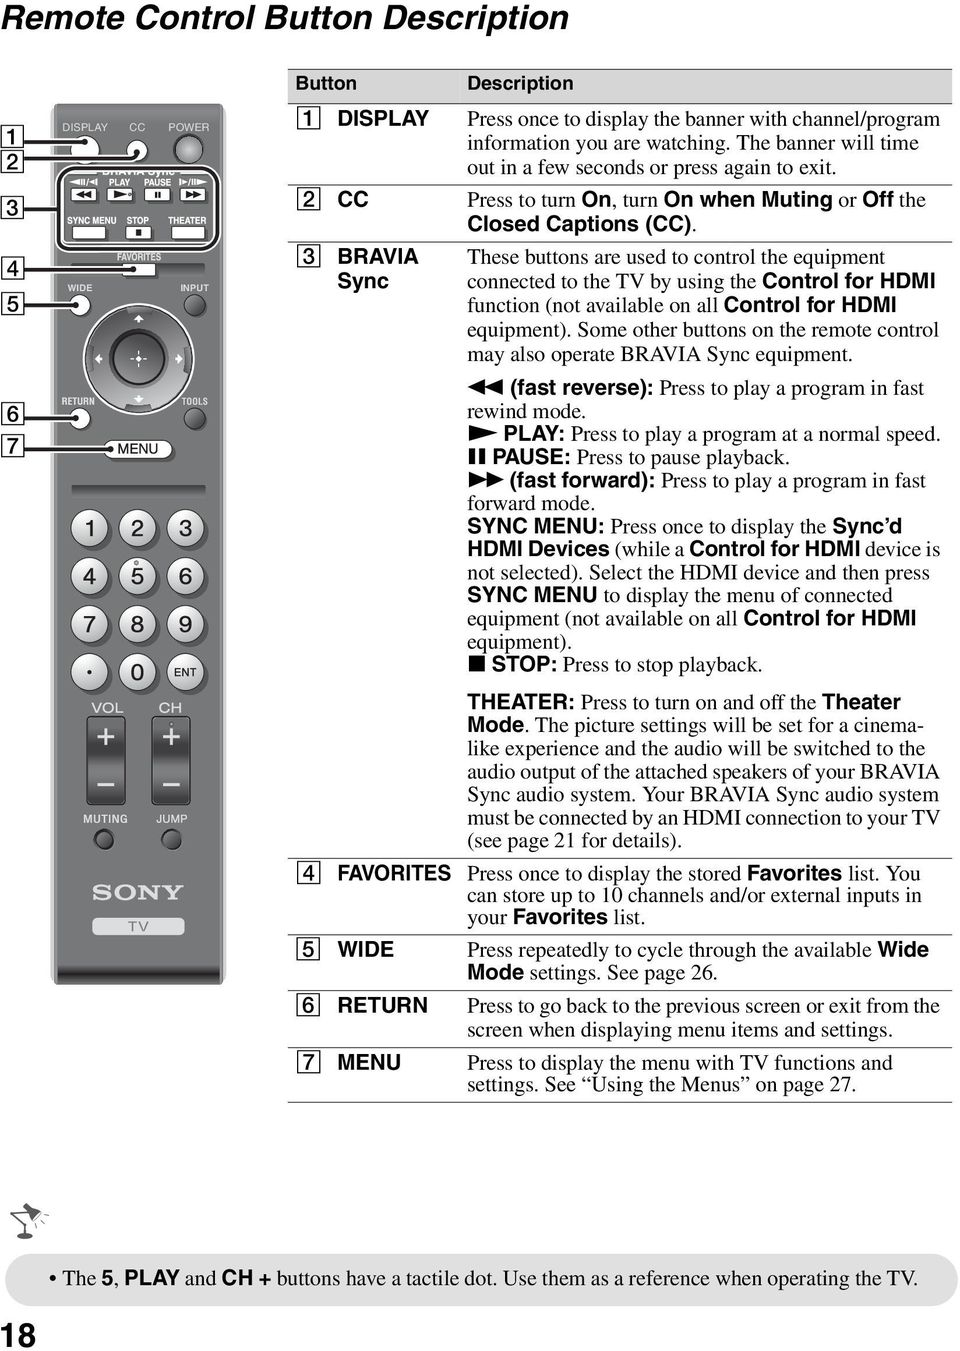 LCD Digital Color TV  Operating Instructions  Sony Customer Support